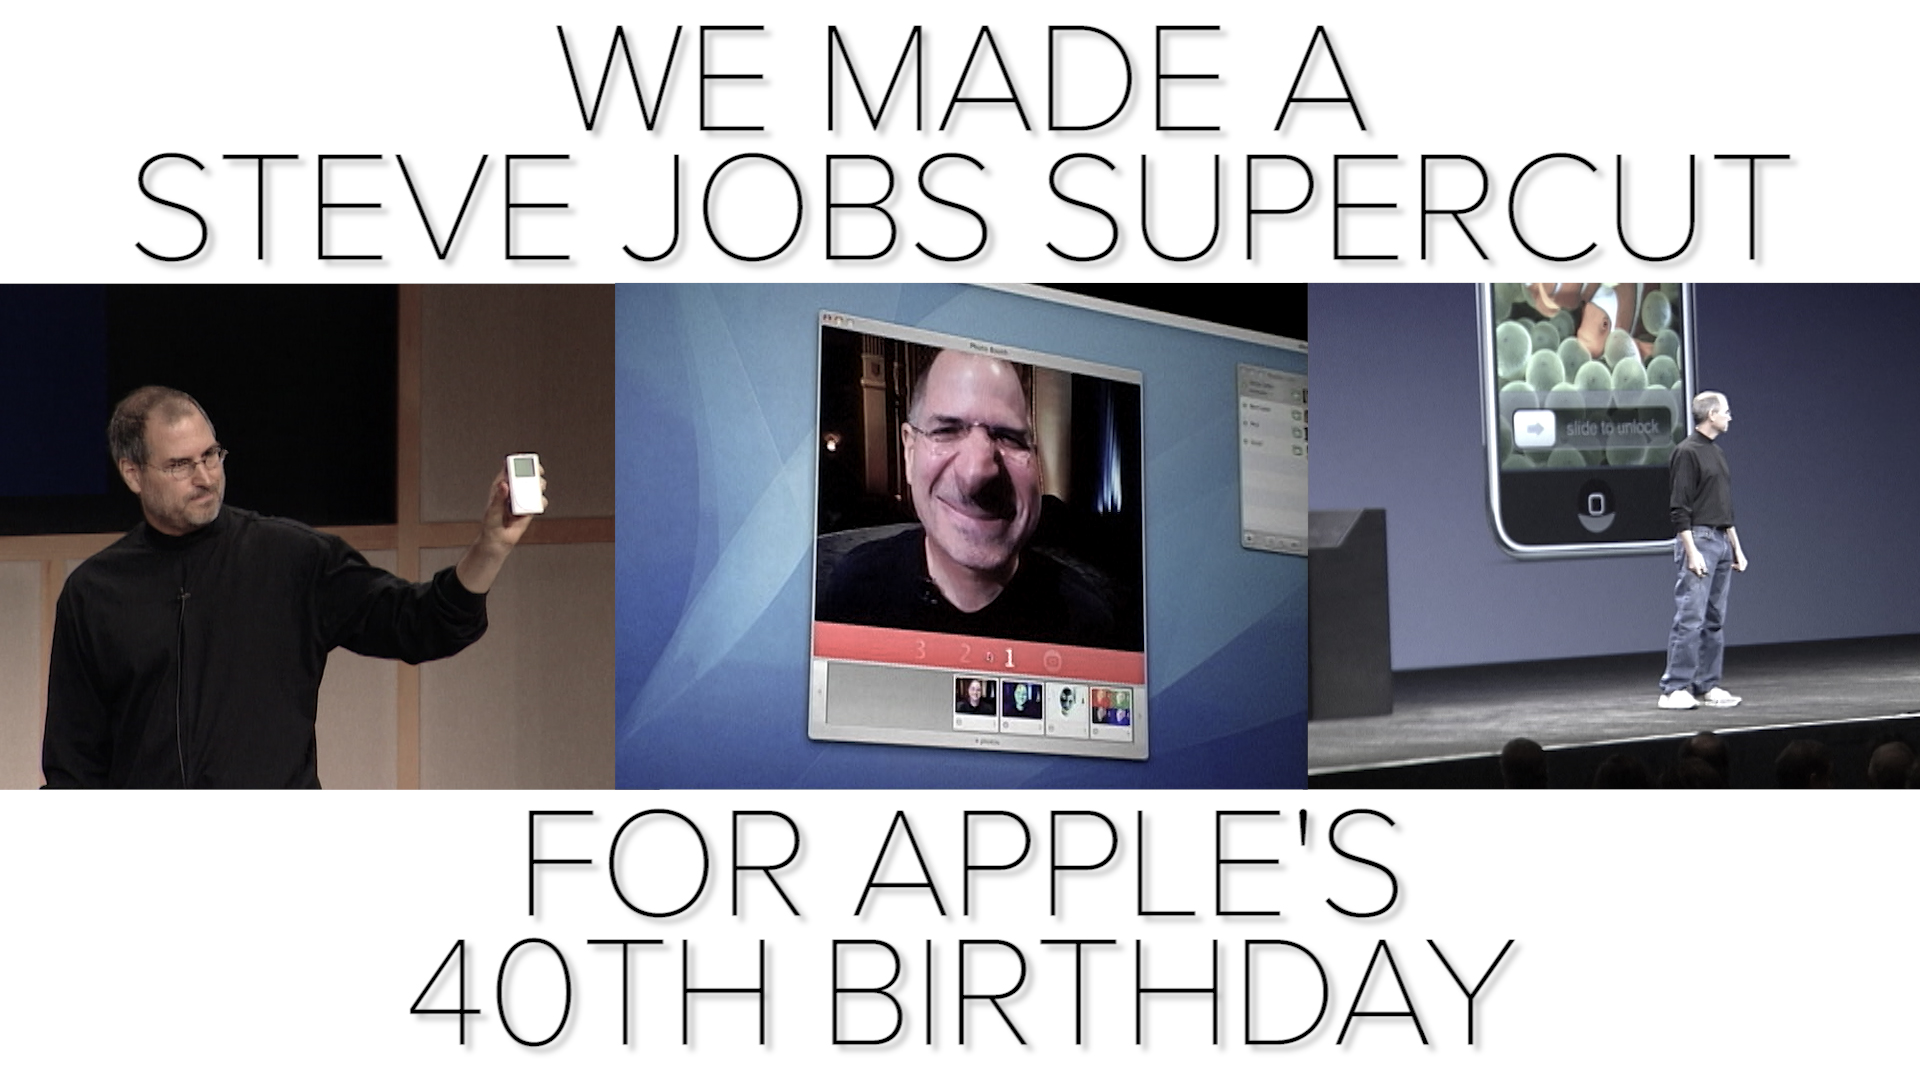 Video: We made a Steve Jobs supercut for Apple's 40th birthday